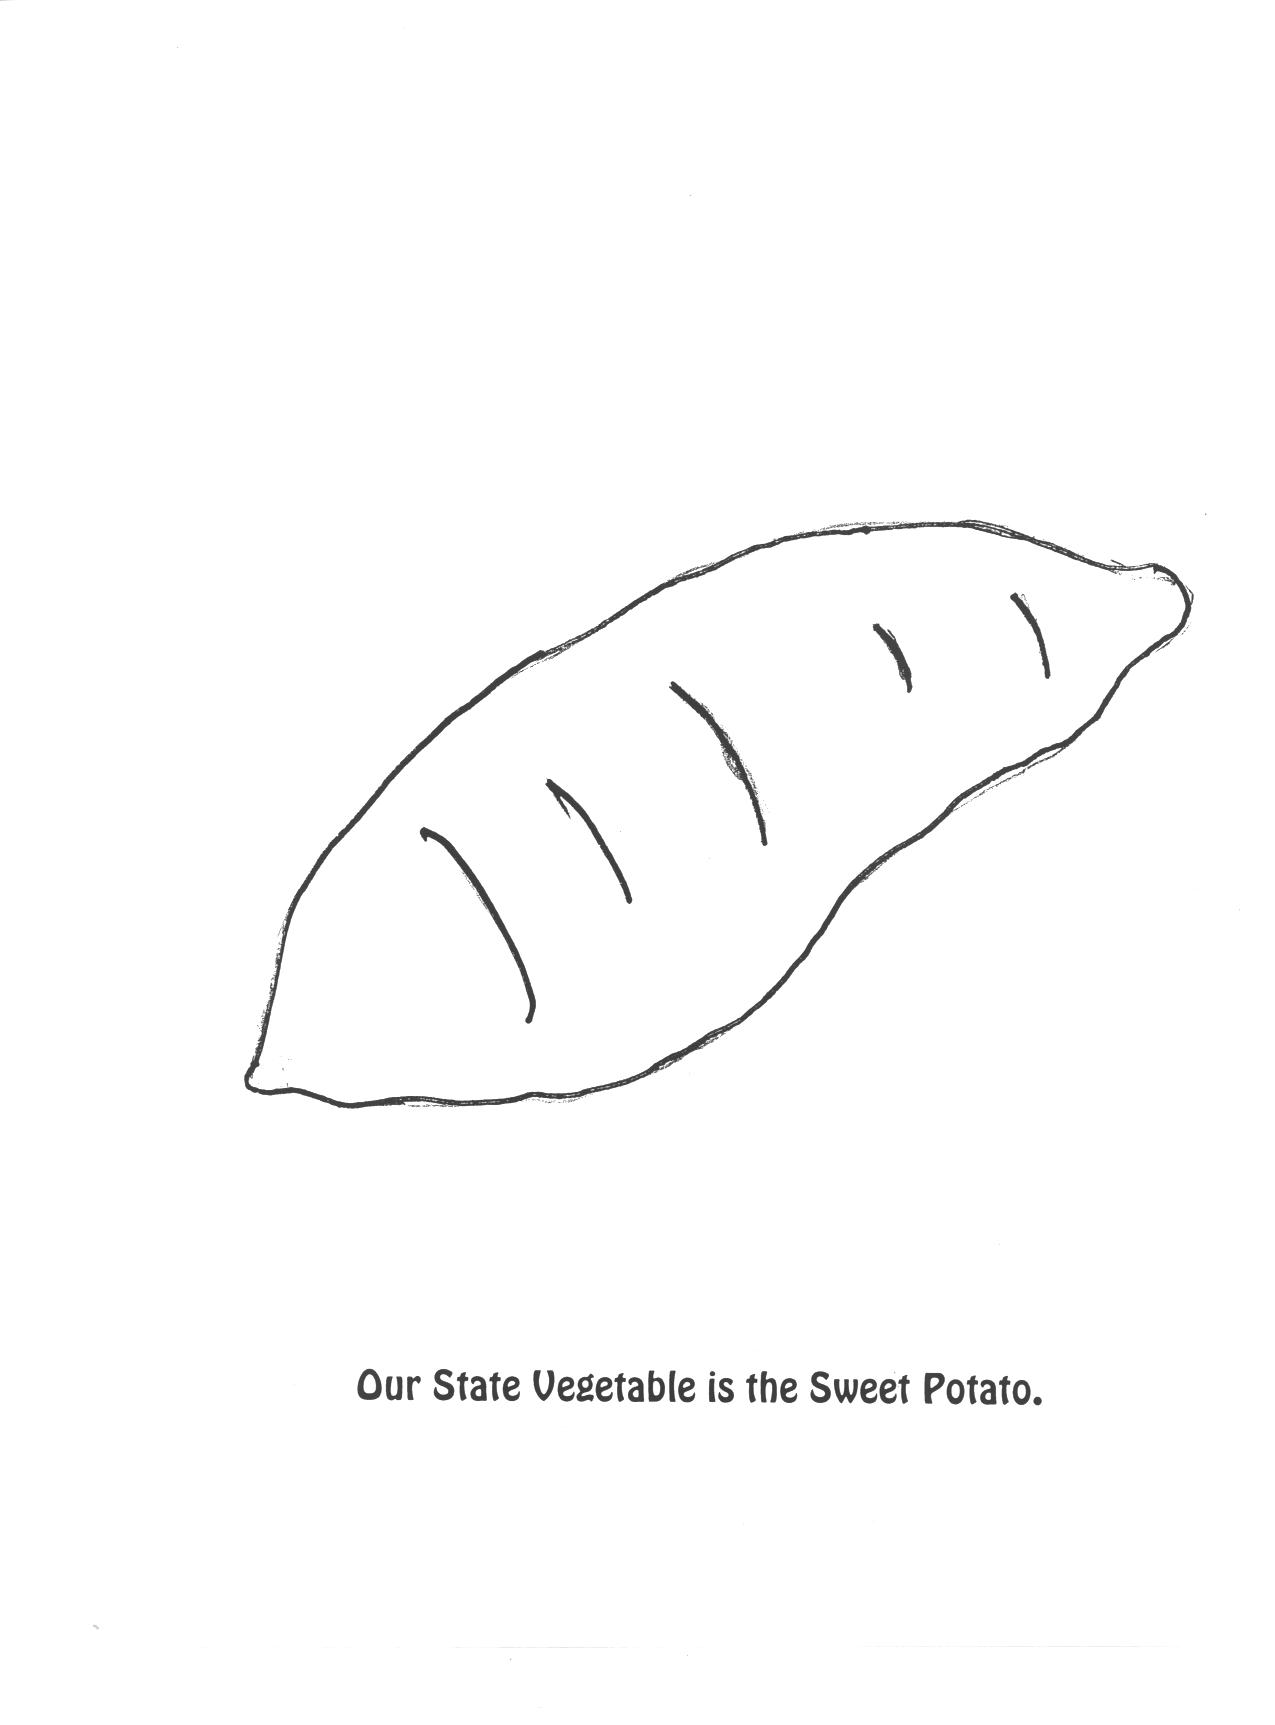 Vegetable coloring pages potato coloring page - State Mammal Our State Vegetable